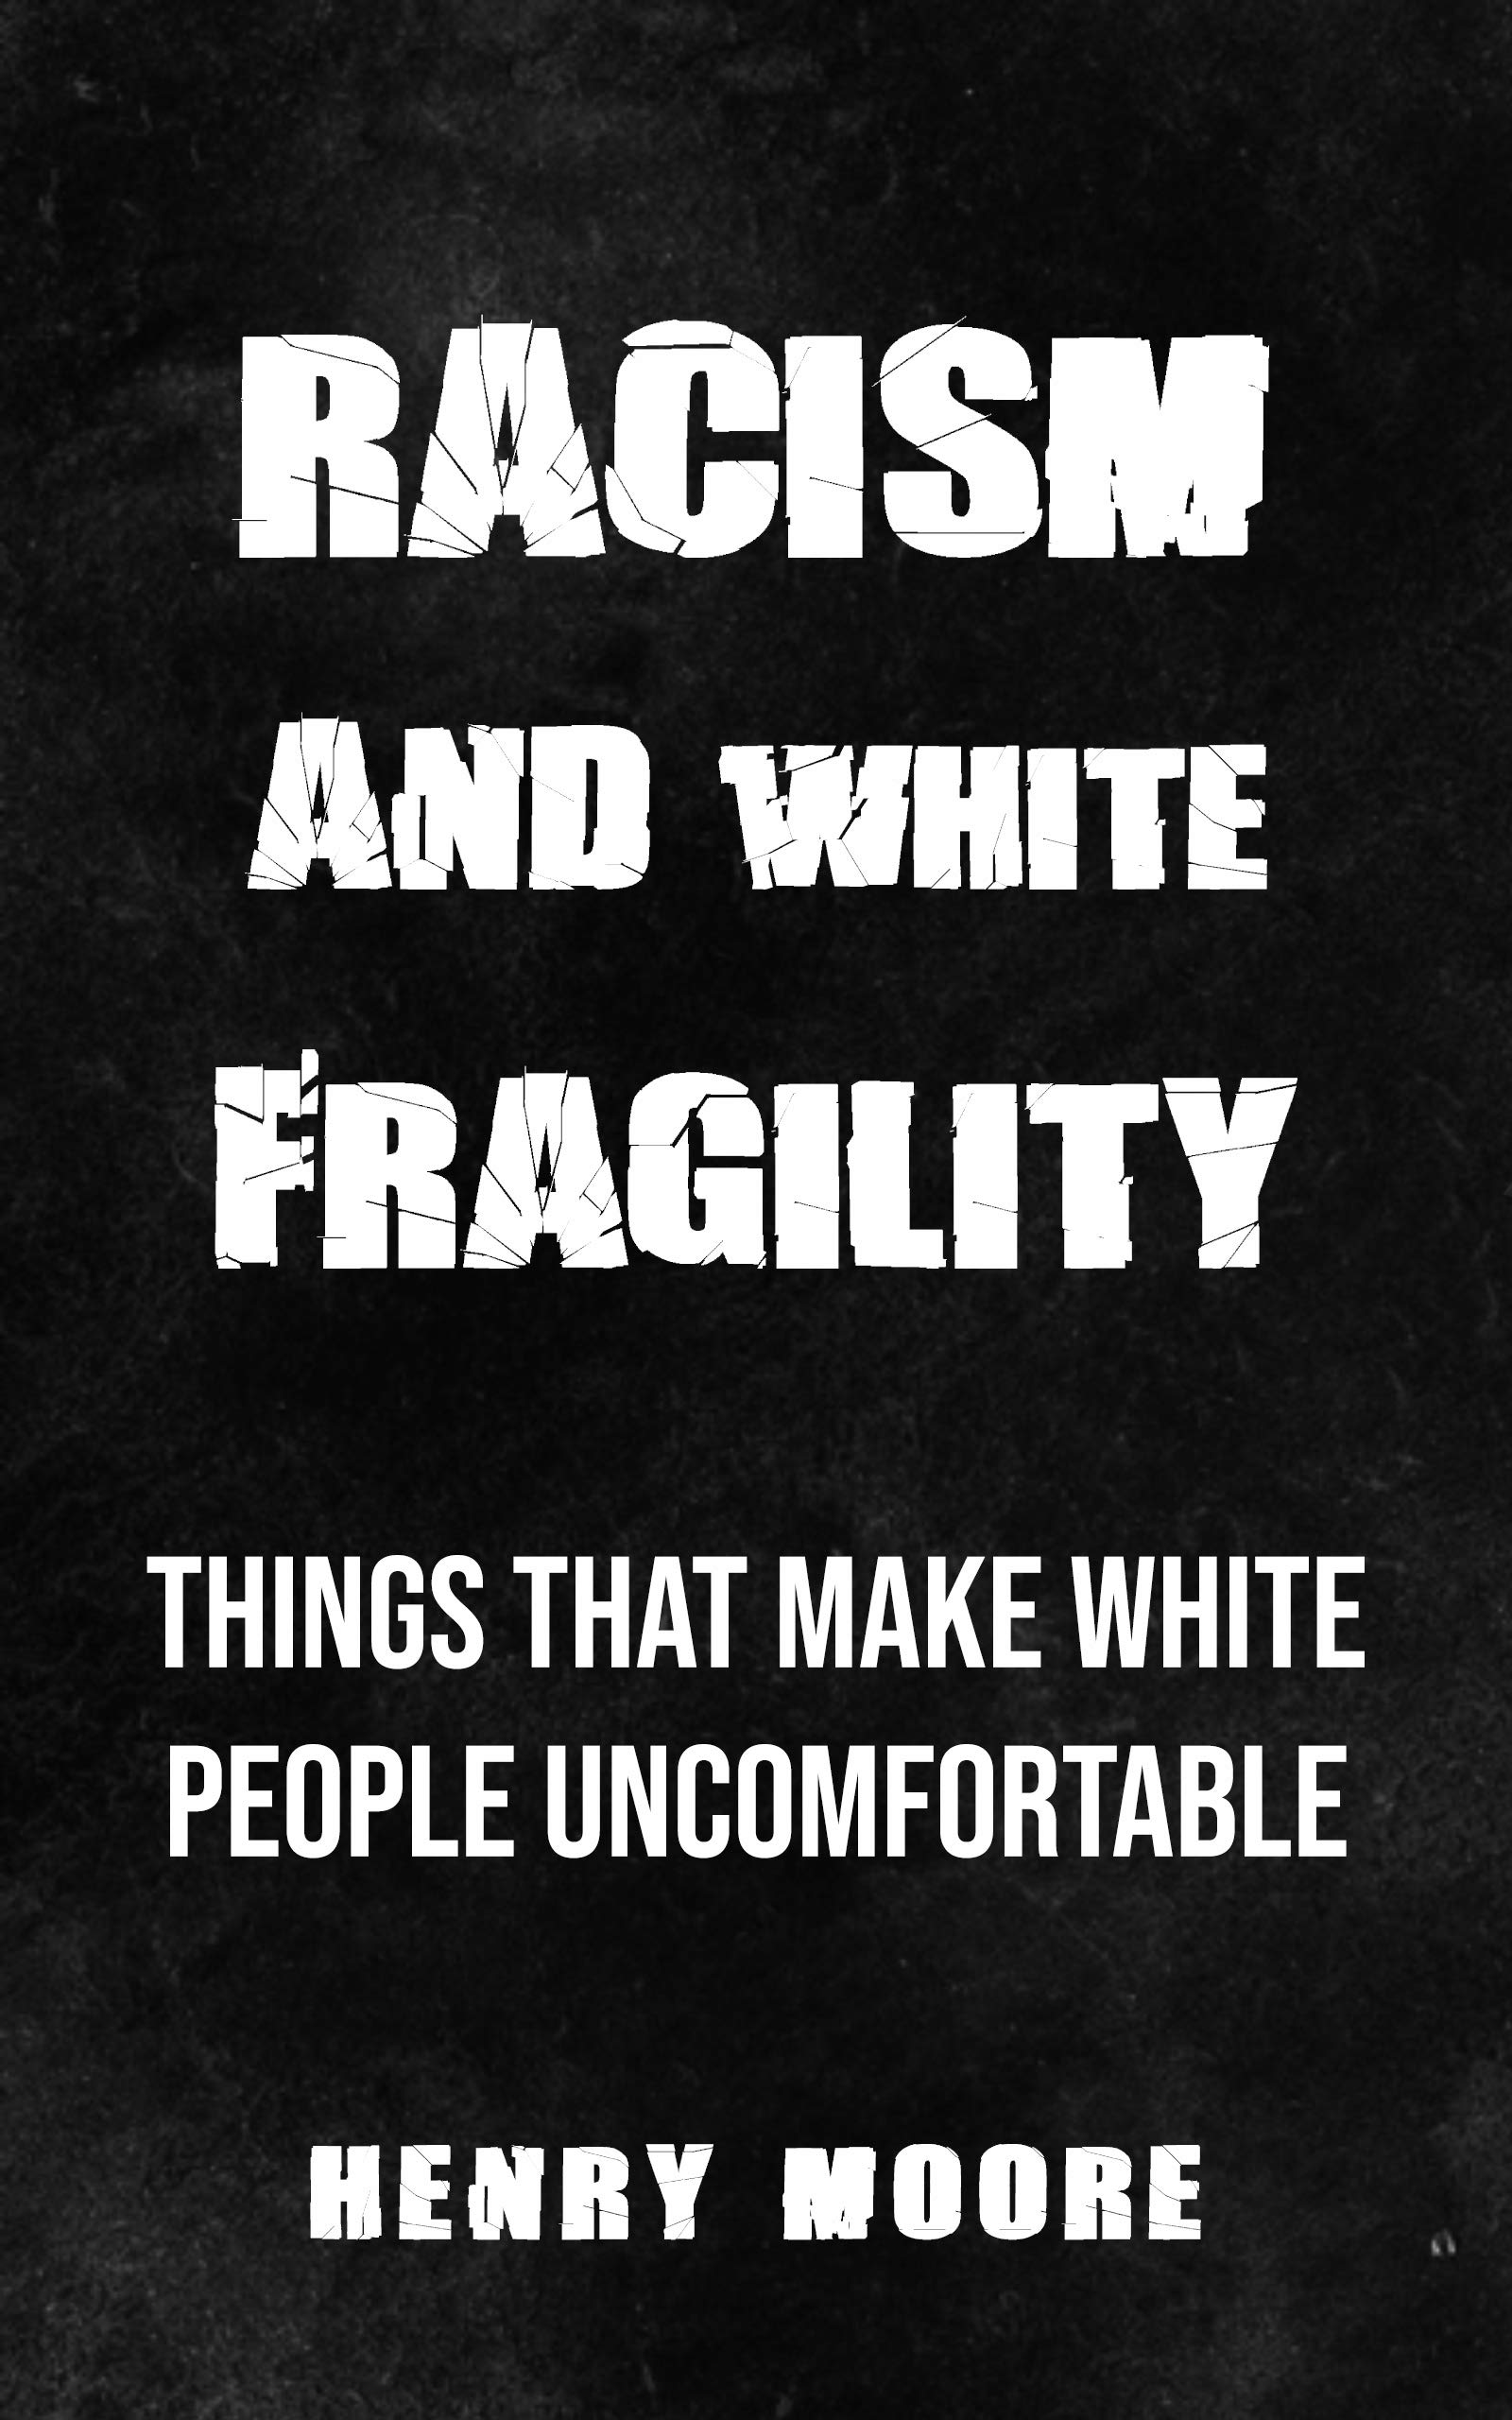 Racism And White Fragility: Things That Make White People Uncomfortable